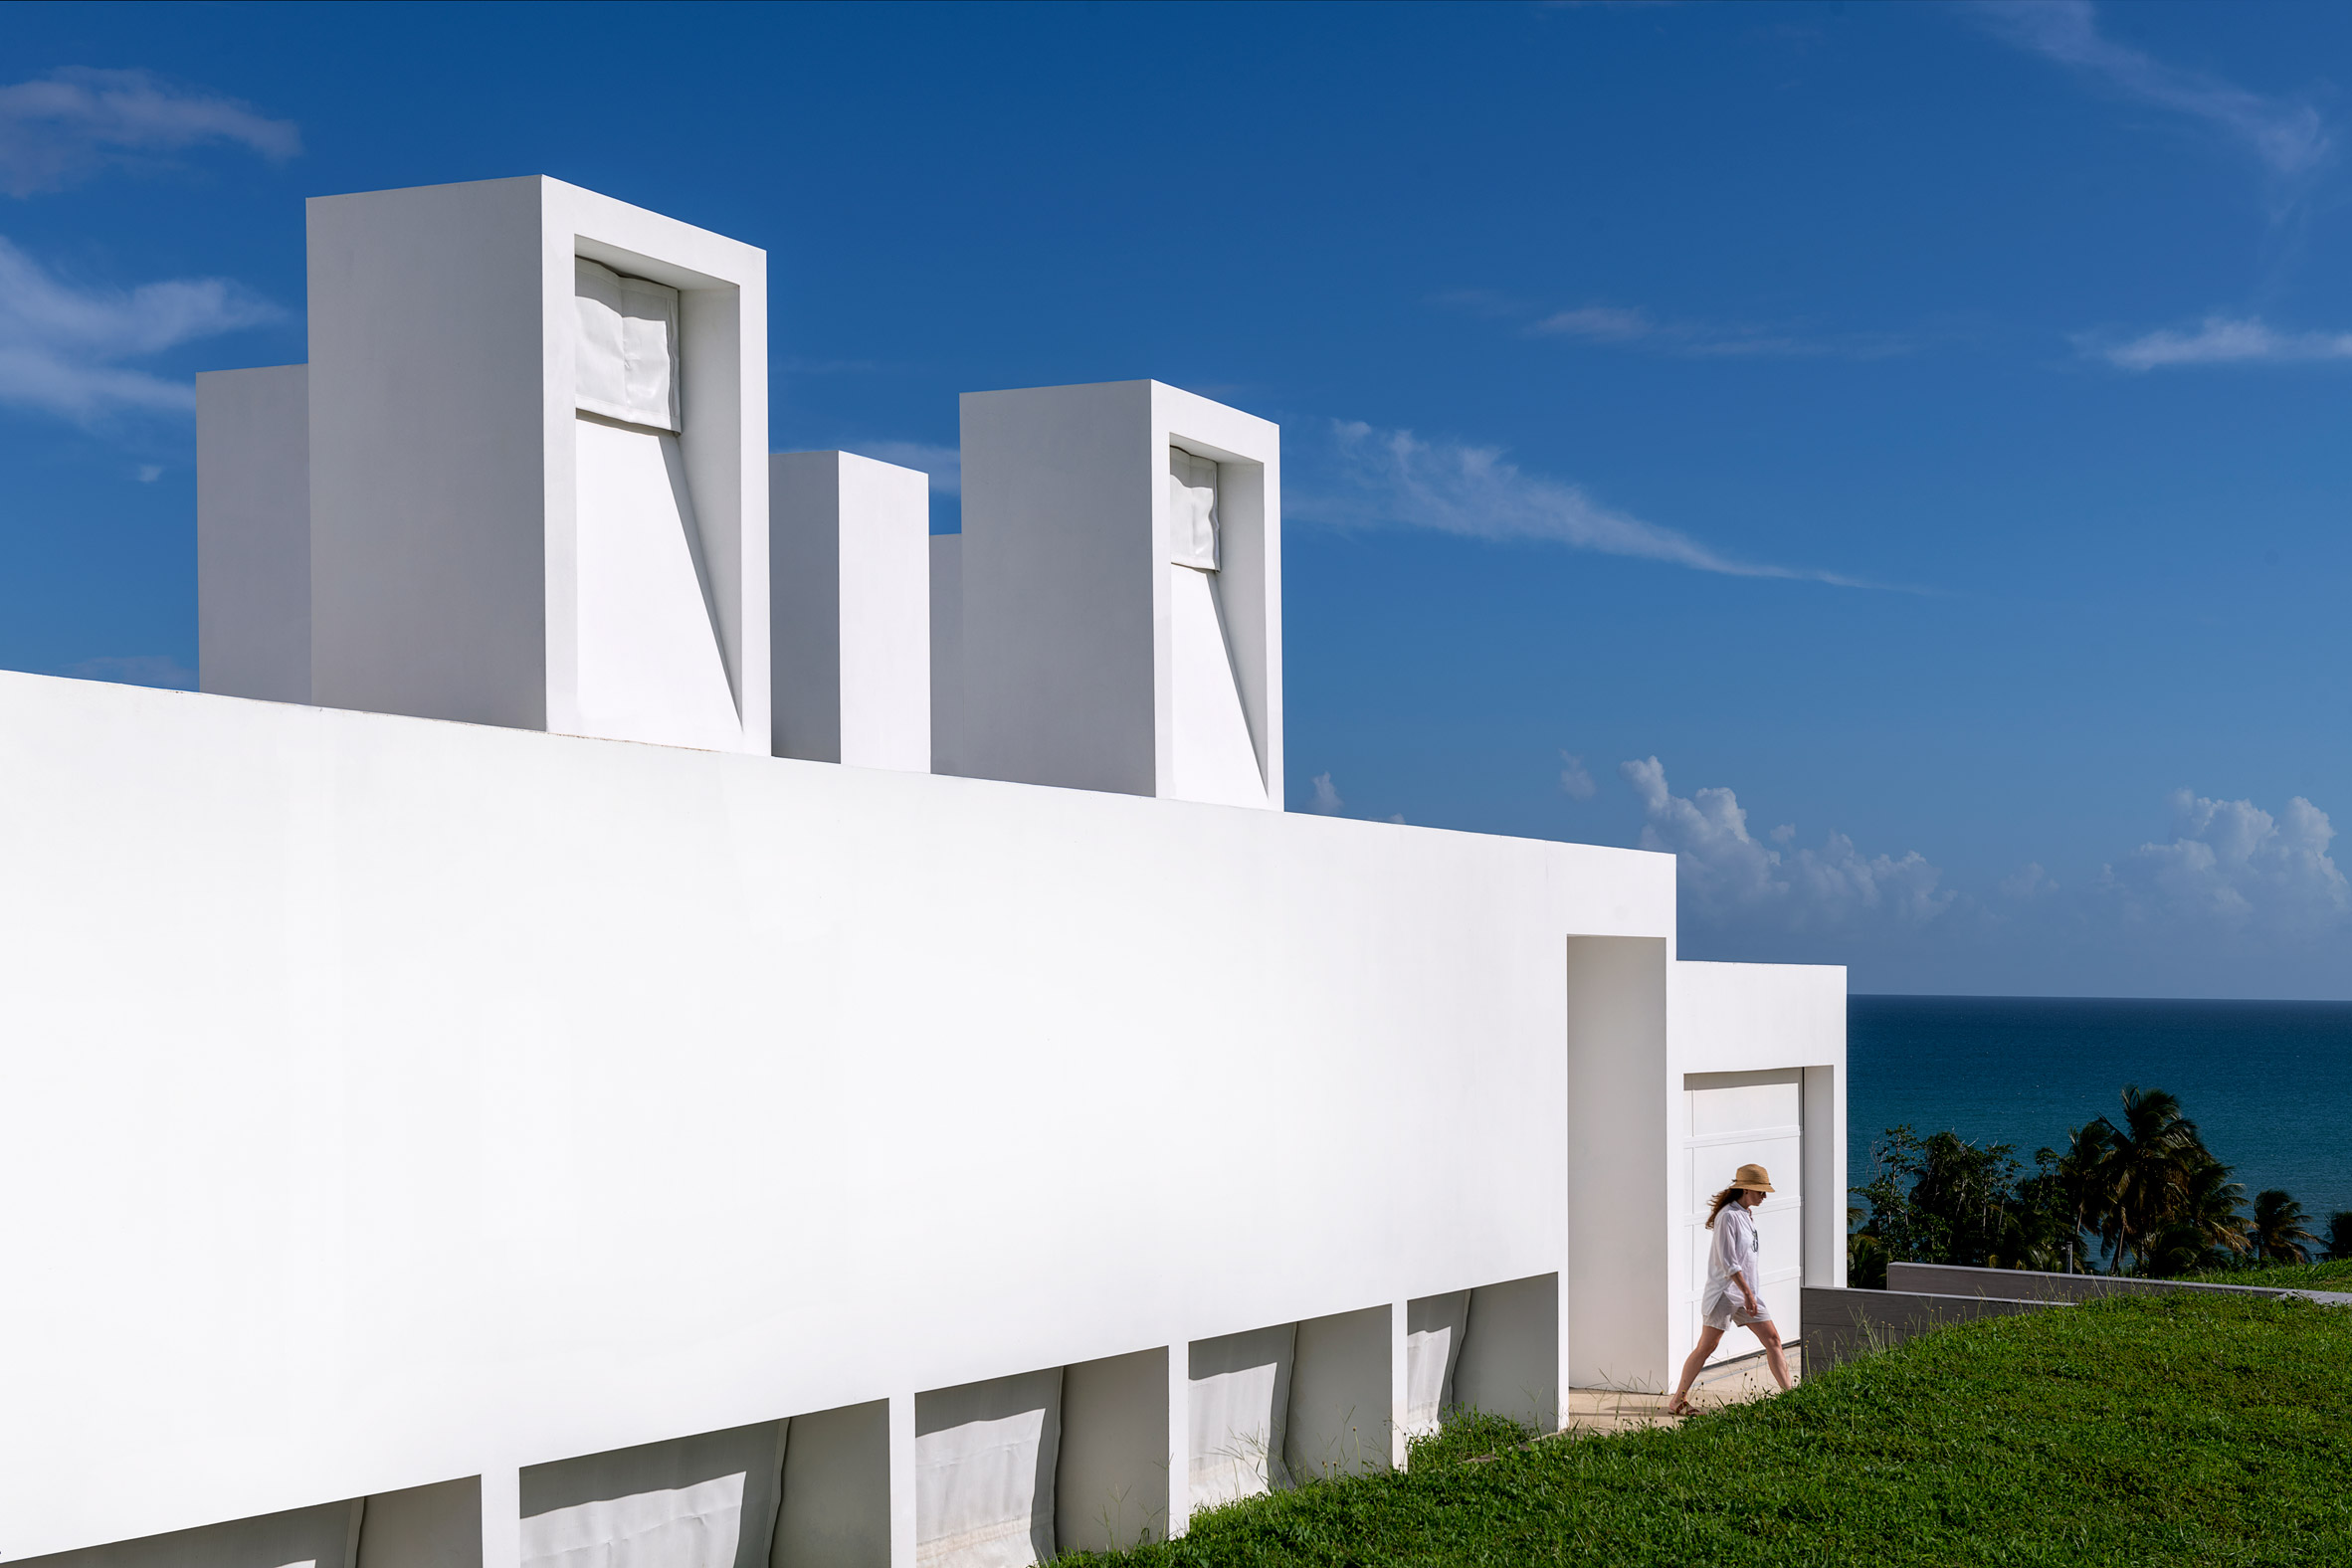 White house with chimneys in Puerto Rico